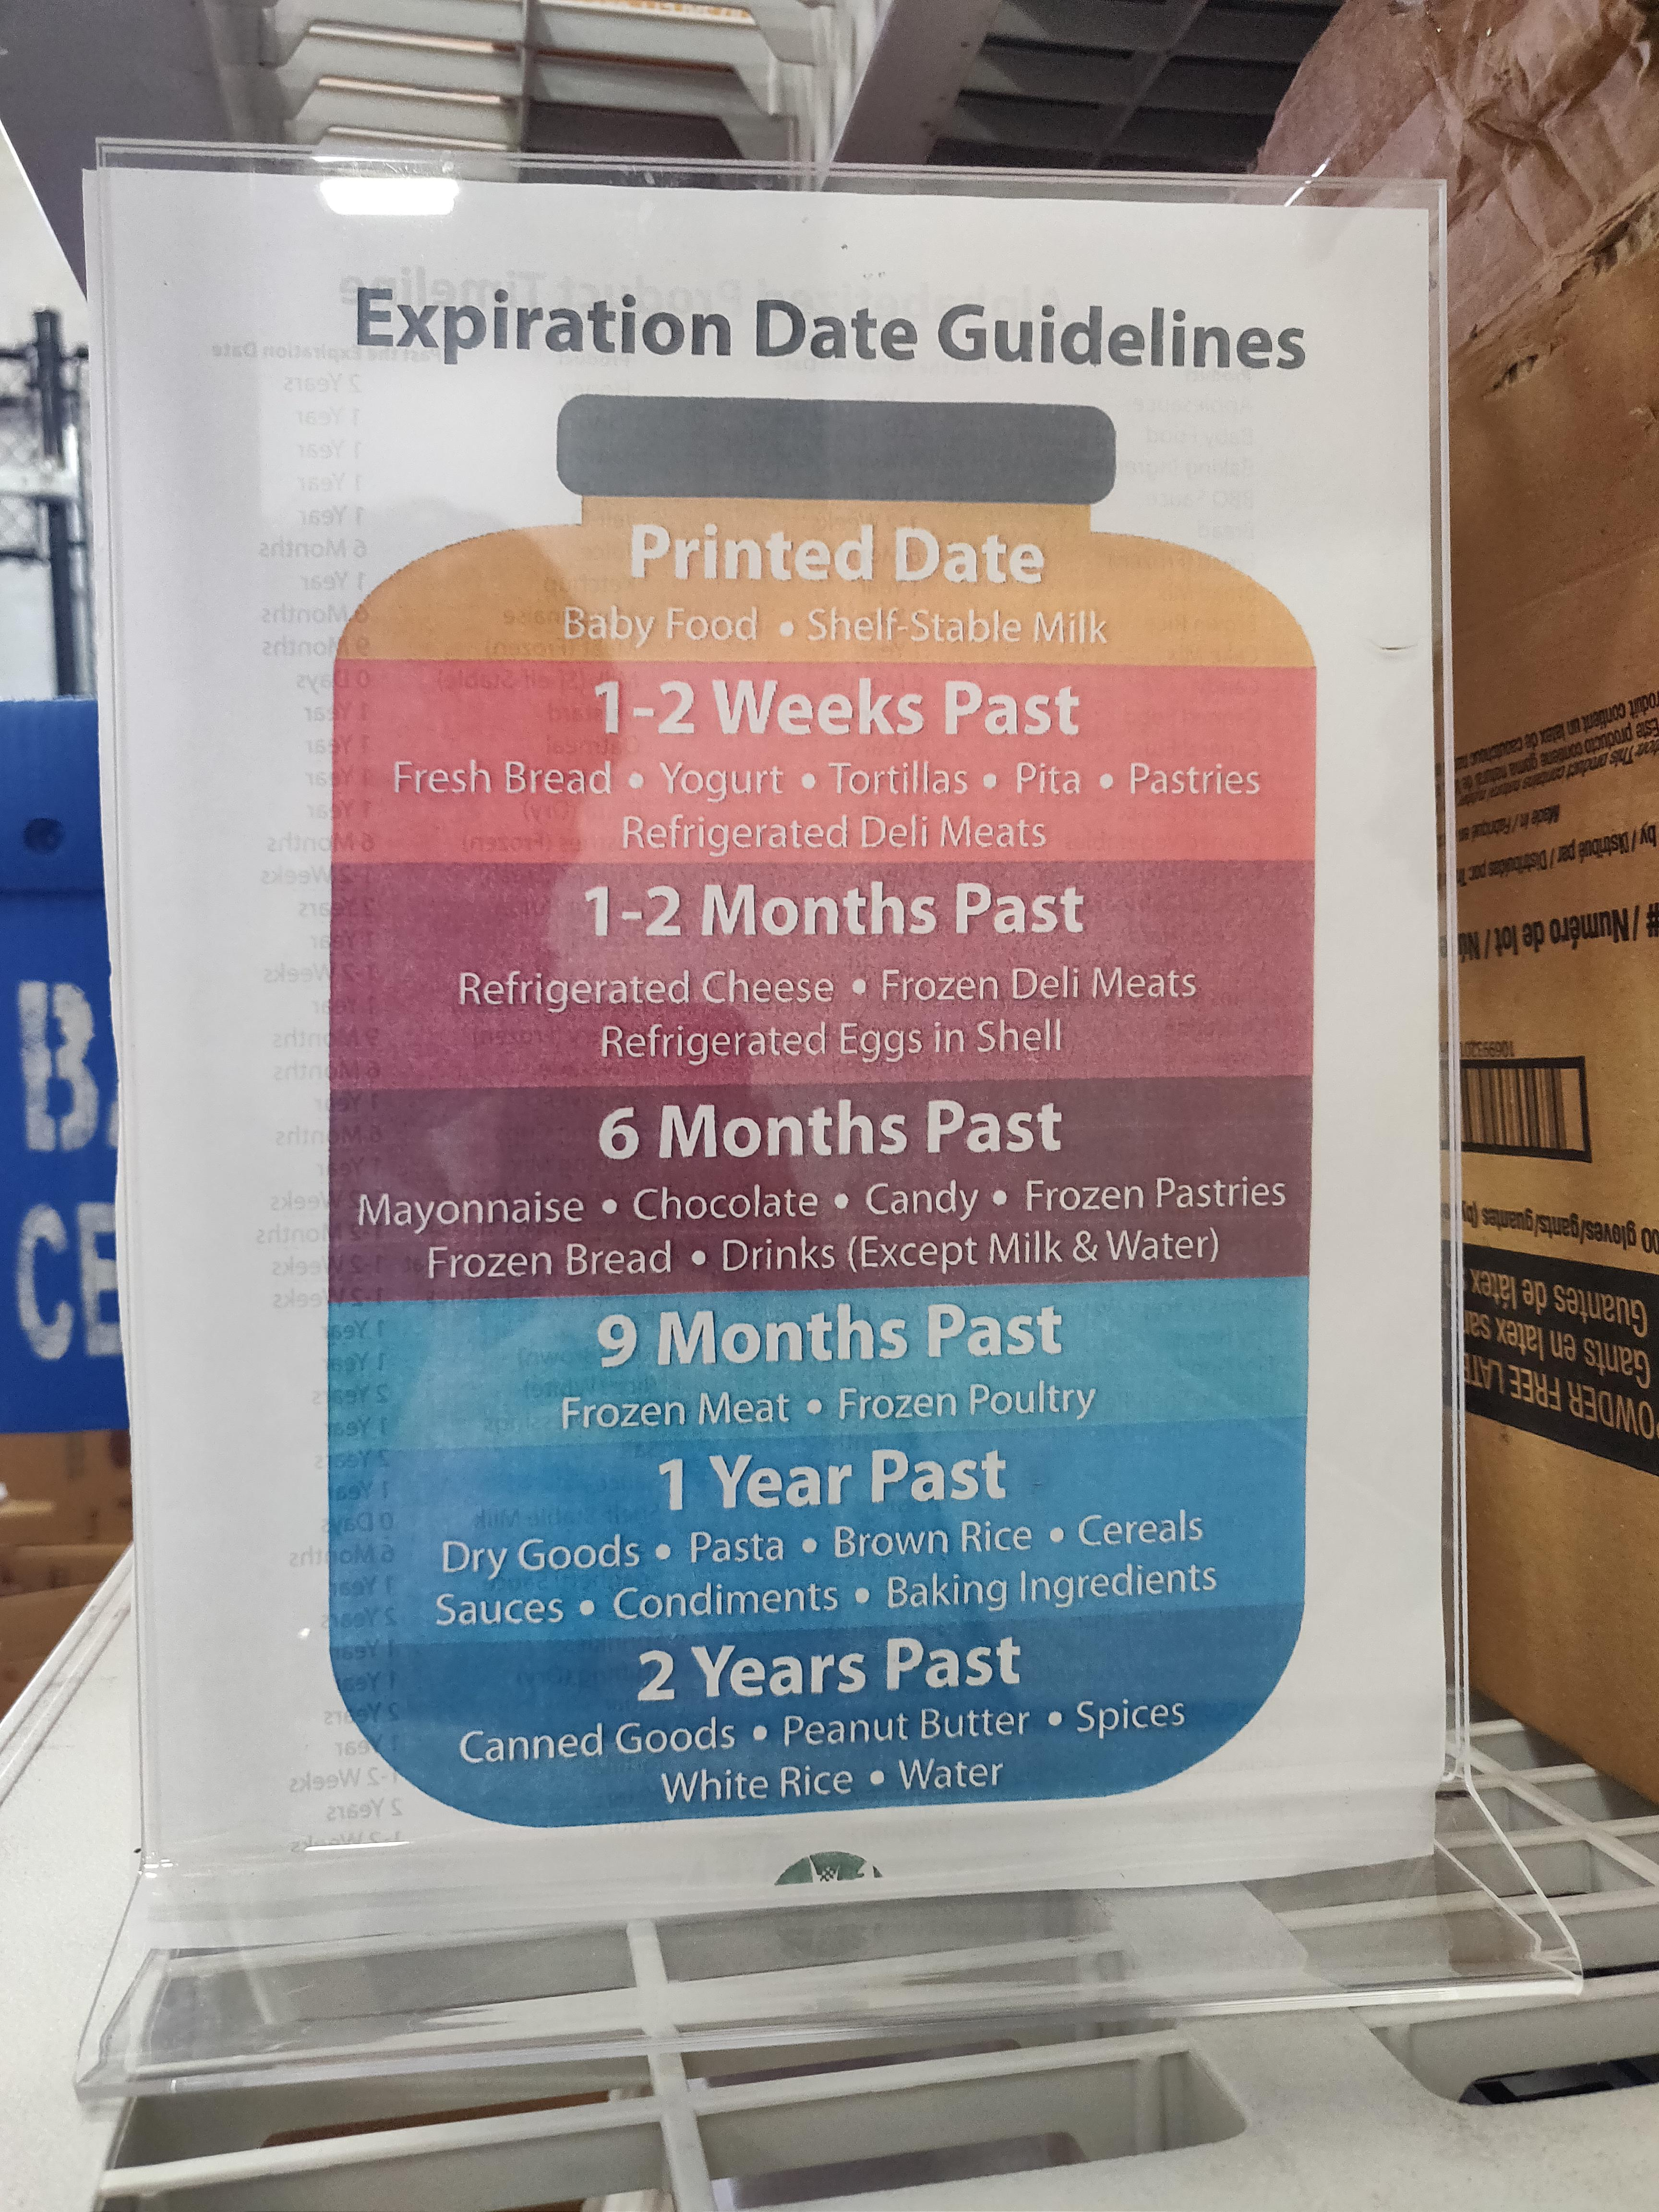 How long you can eat food for past the written expiration date